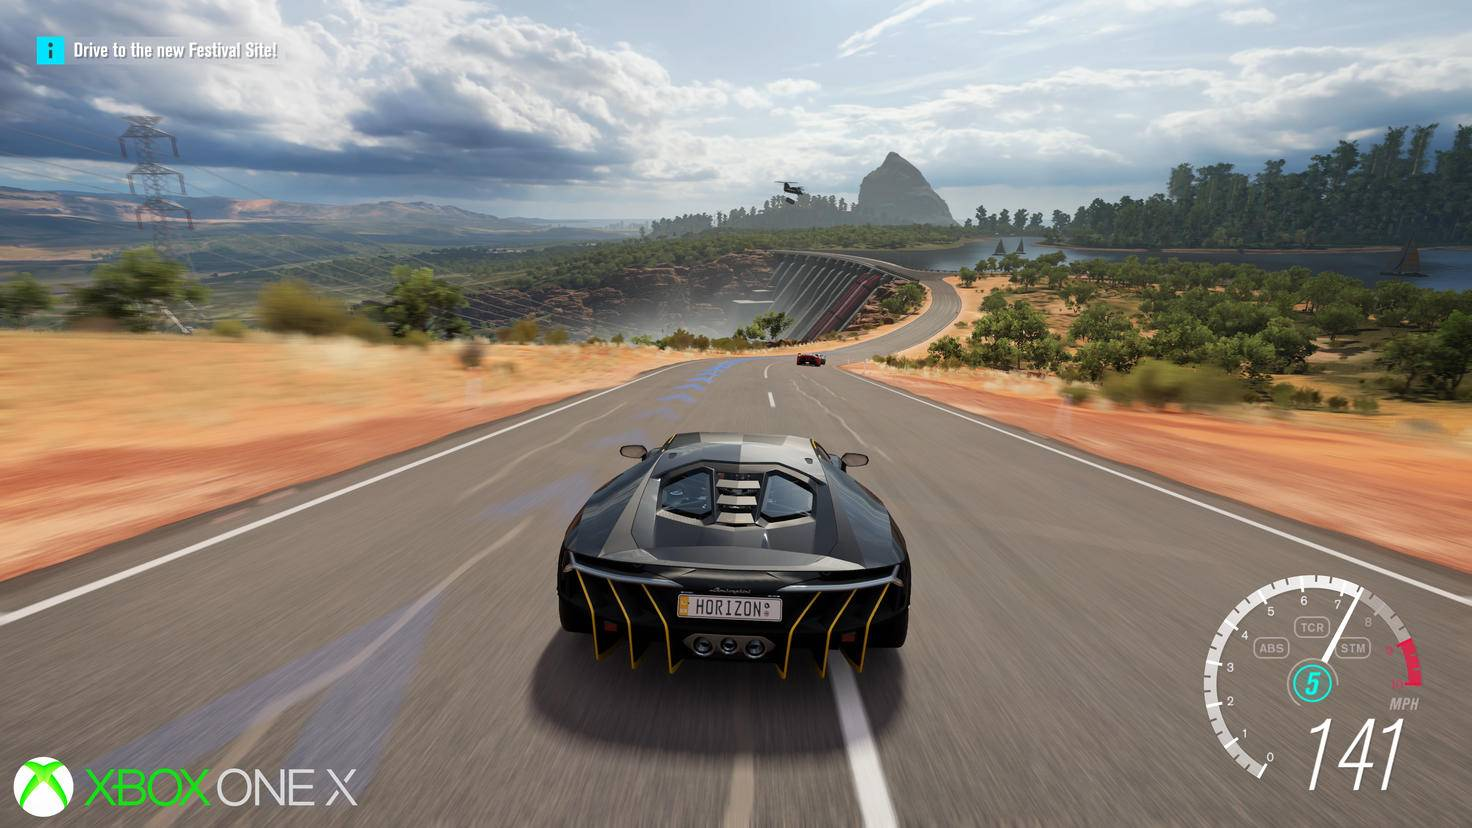 Xbox-One-X-Forza-Horizon-3